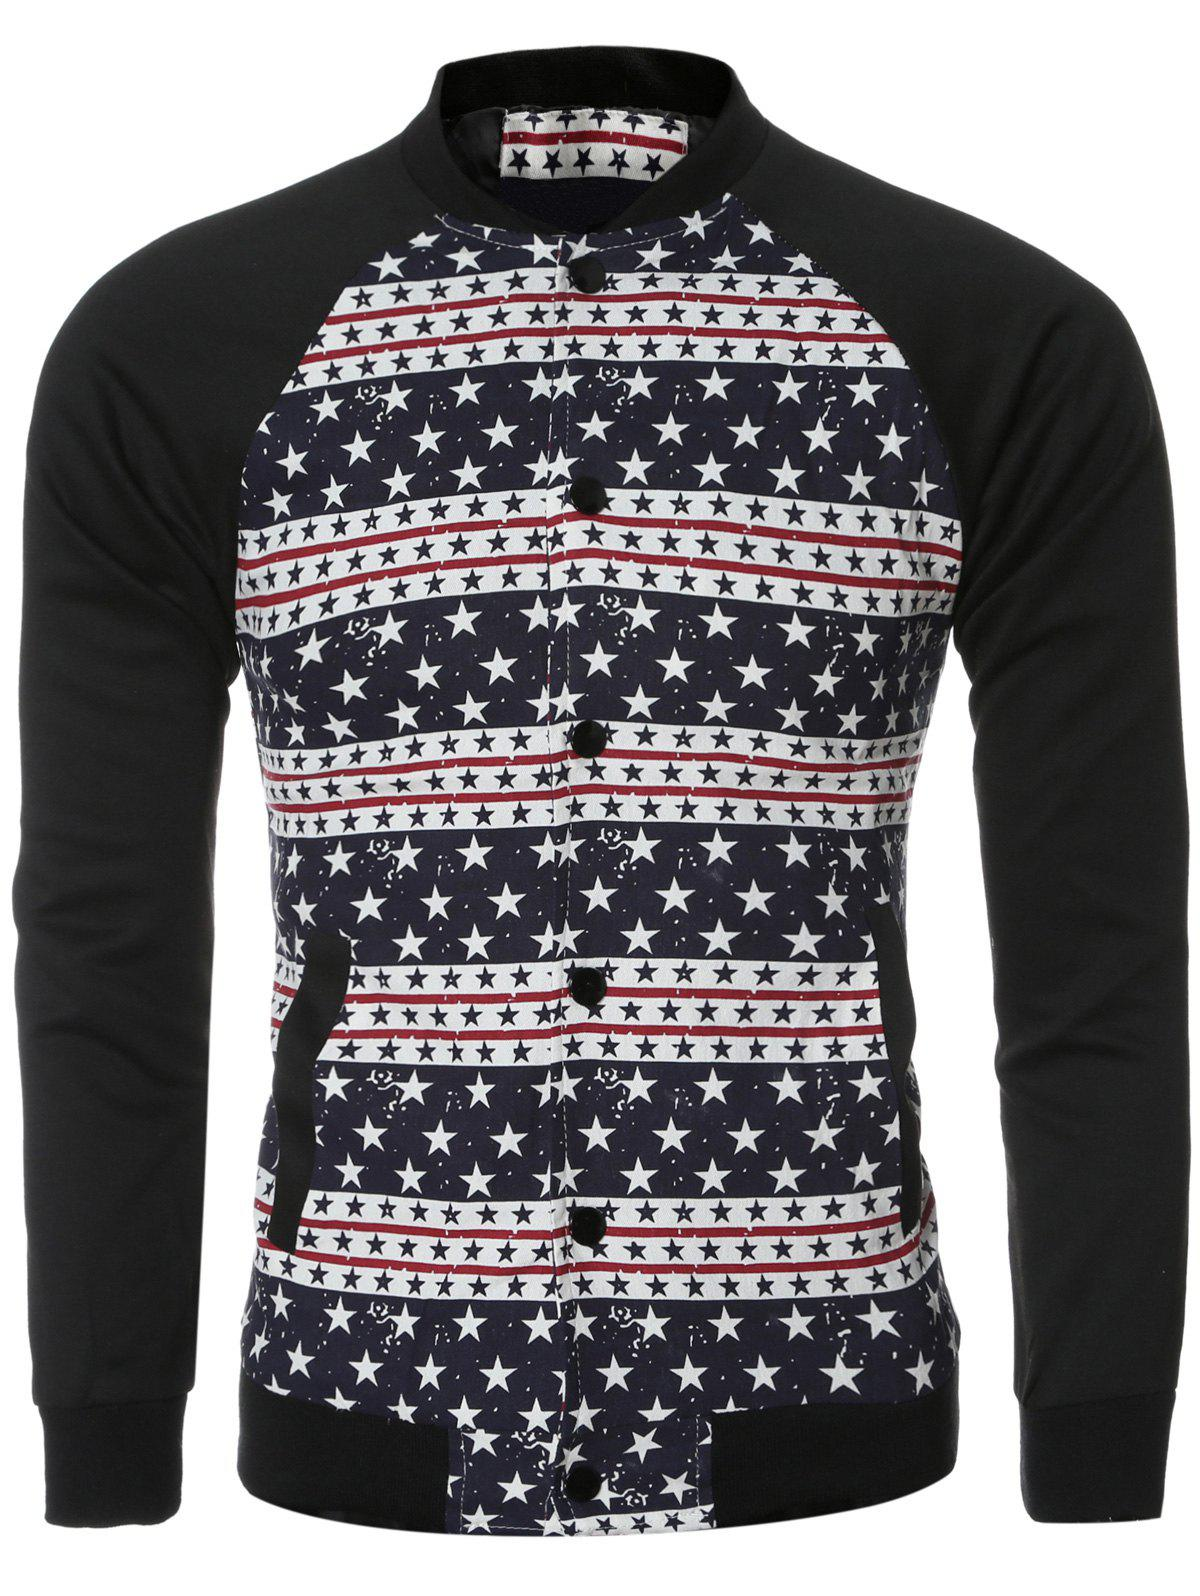 Stars and Stripe Printed Spliced Long Sleeve Bomber Jacket - COLORMIX 2XL